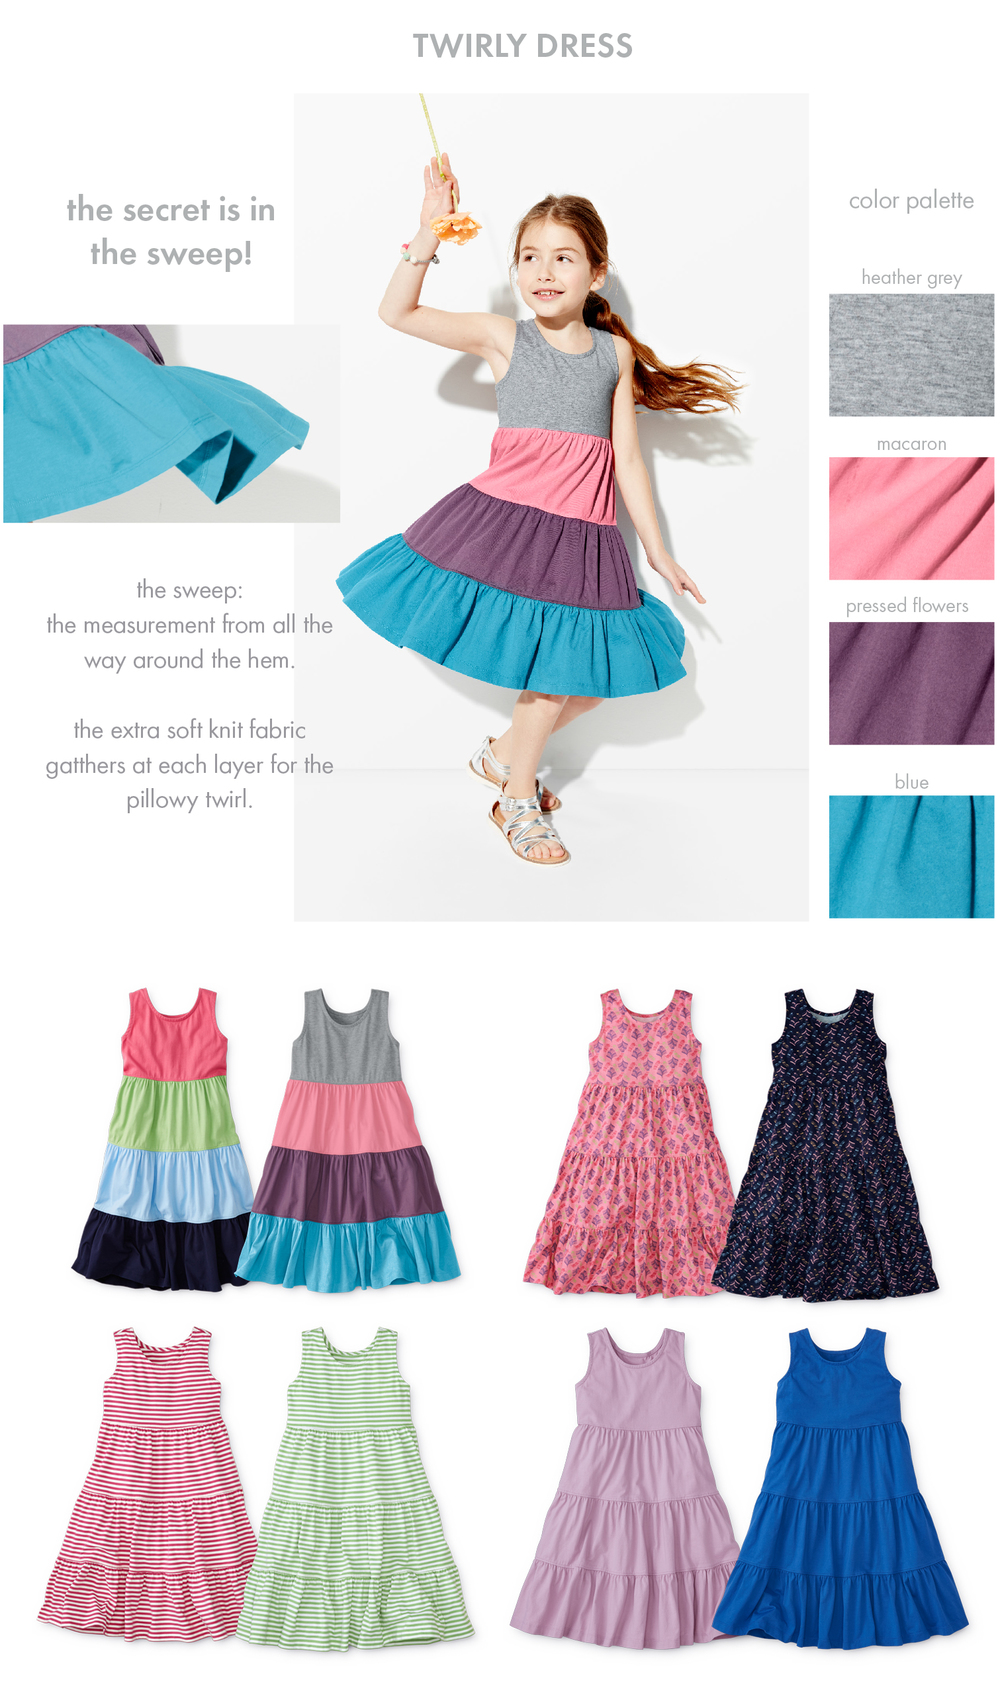 Twirly Girls Dresses - Hanna Andersson